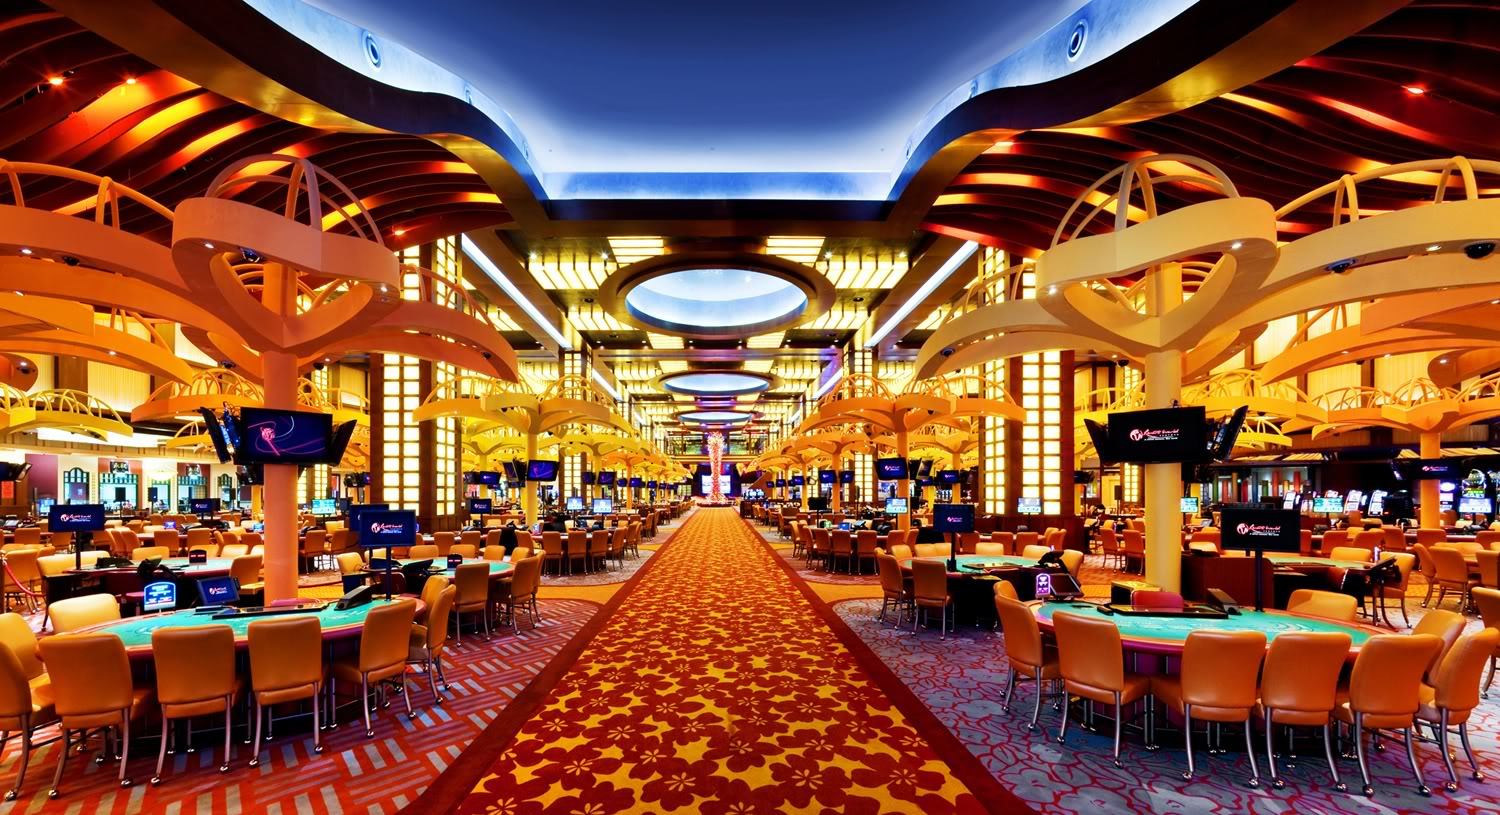 Las vegas casino background which online casino pays the best